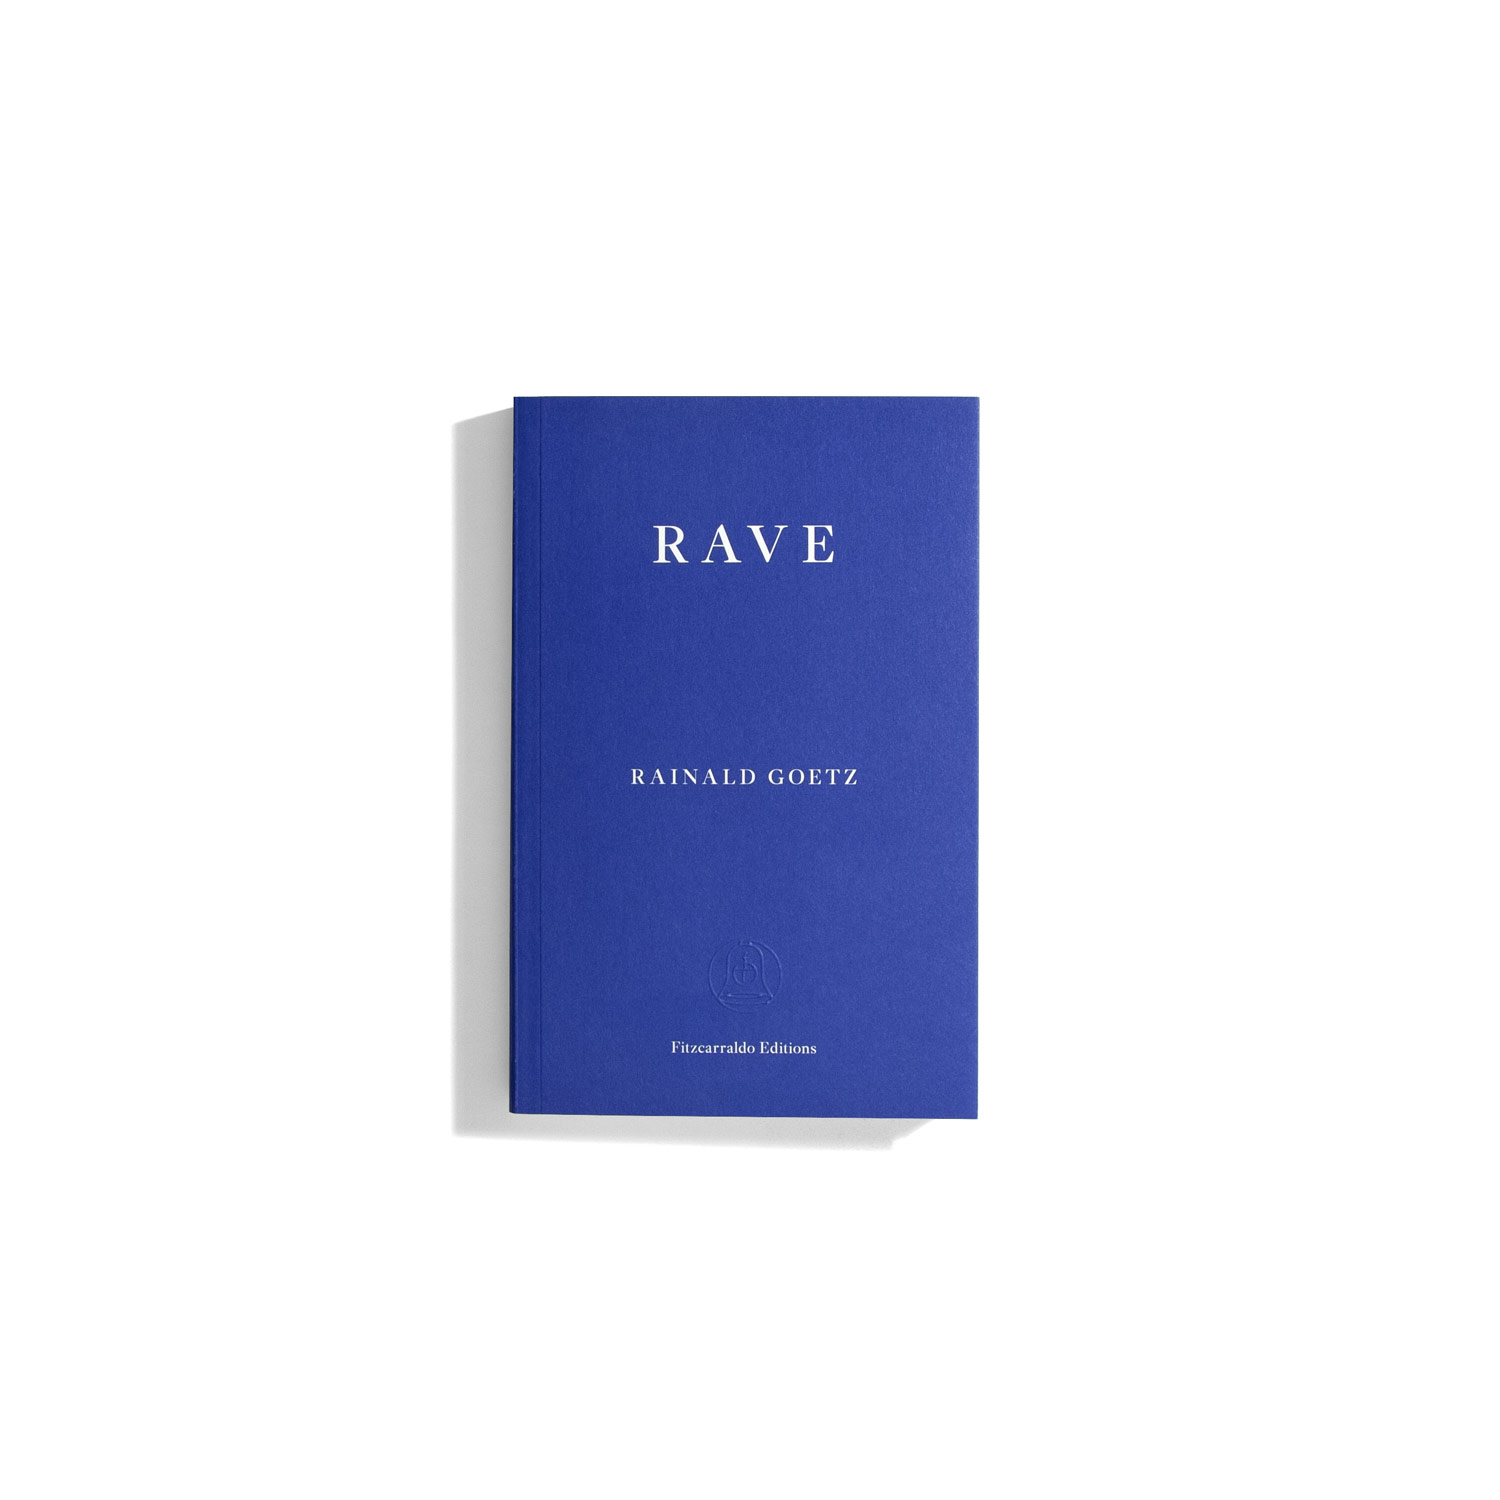 Rave - Rainald Goetz